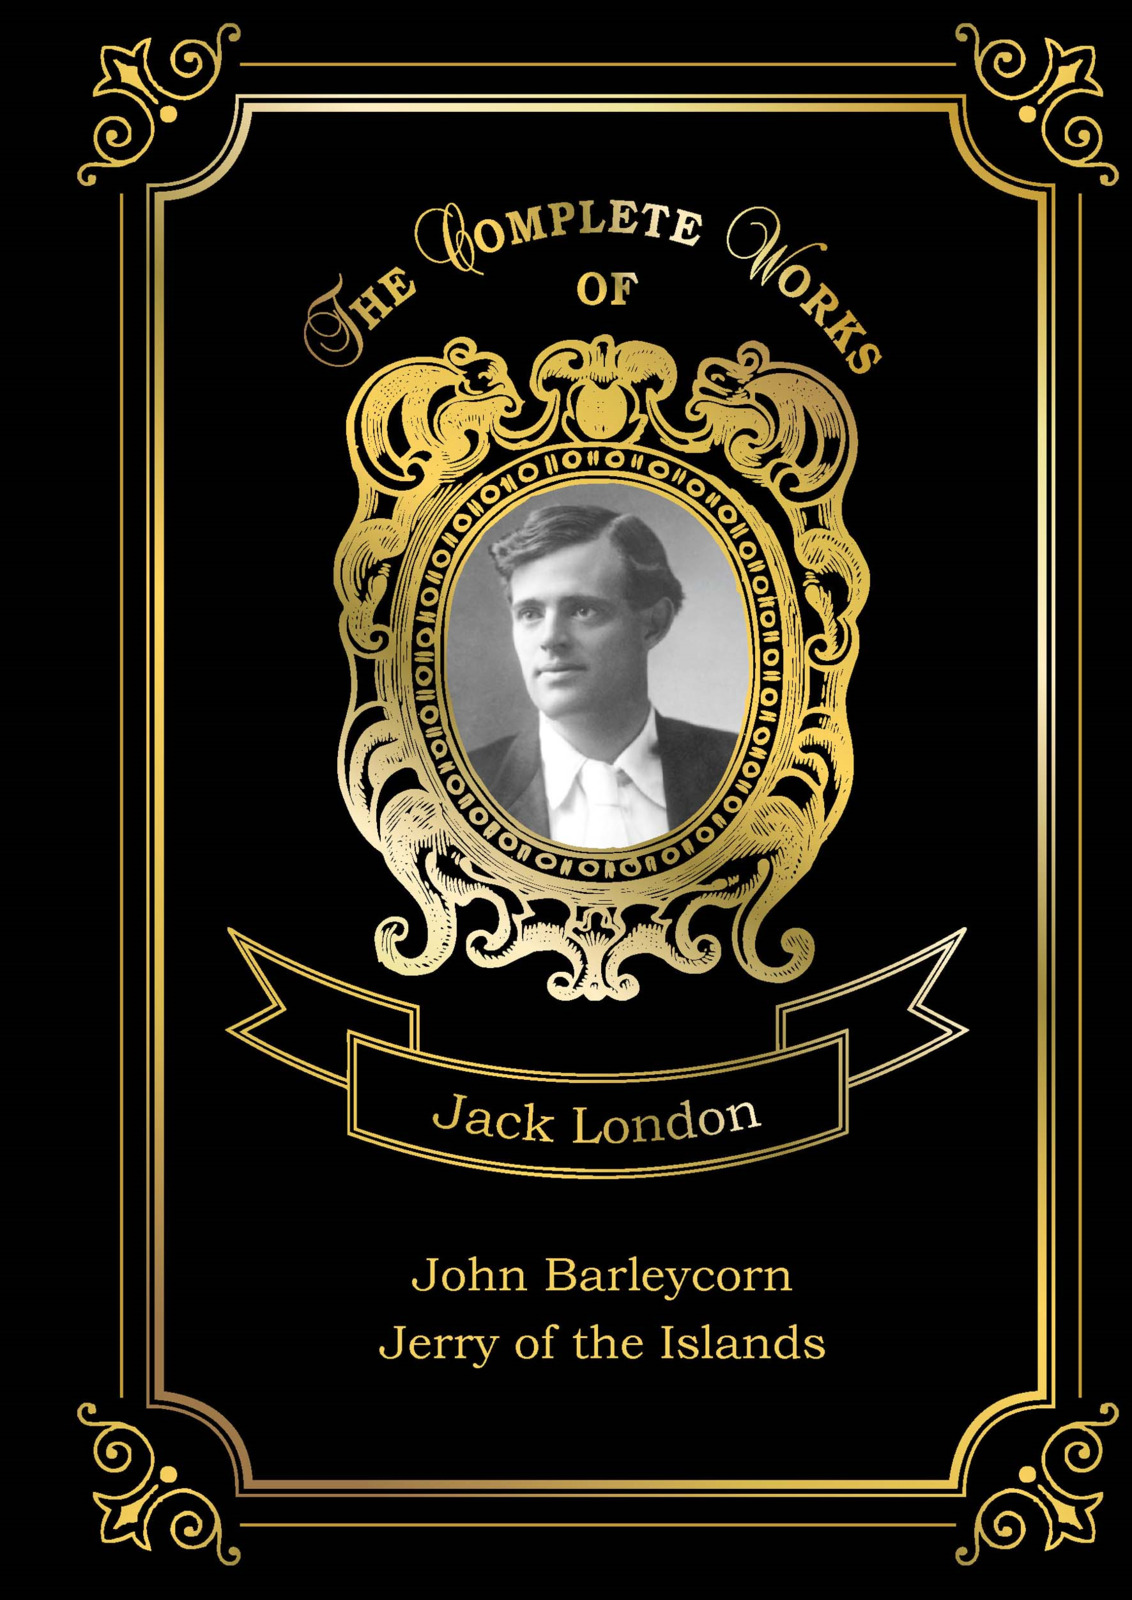 Jack London John Barleycorn and Jerry of the Islands джек лондон jerry of the islands